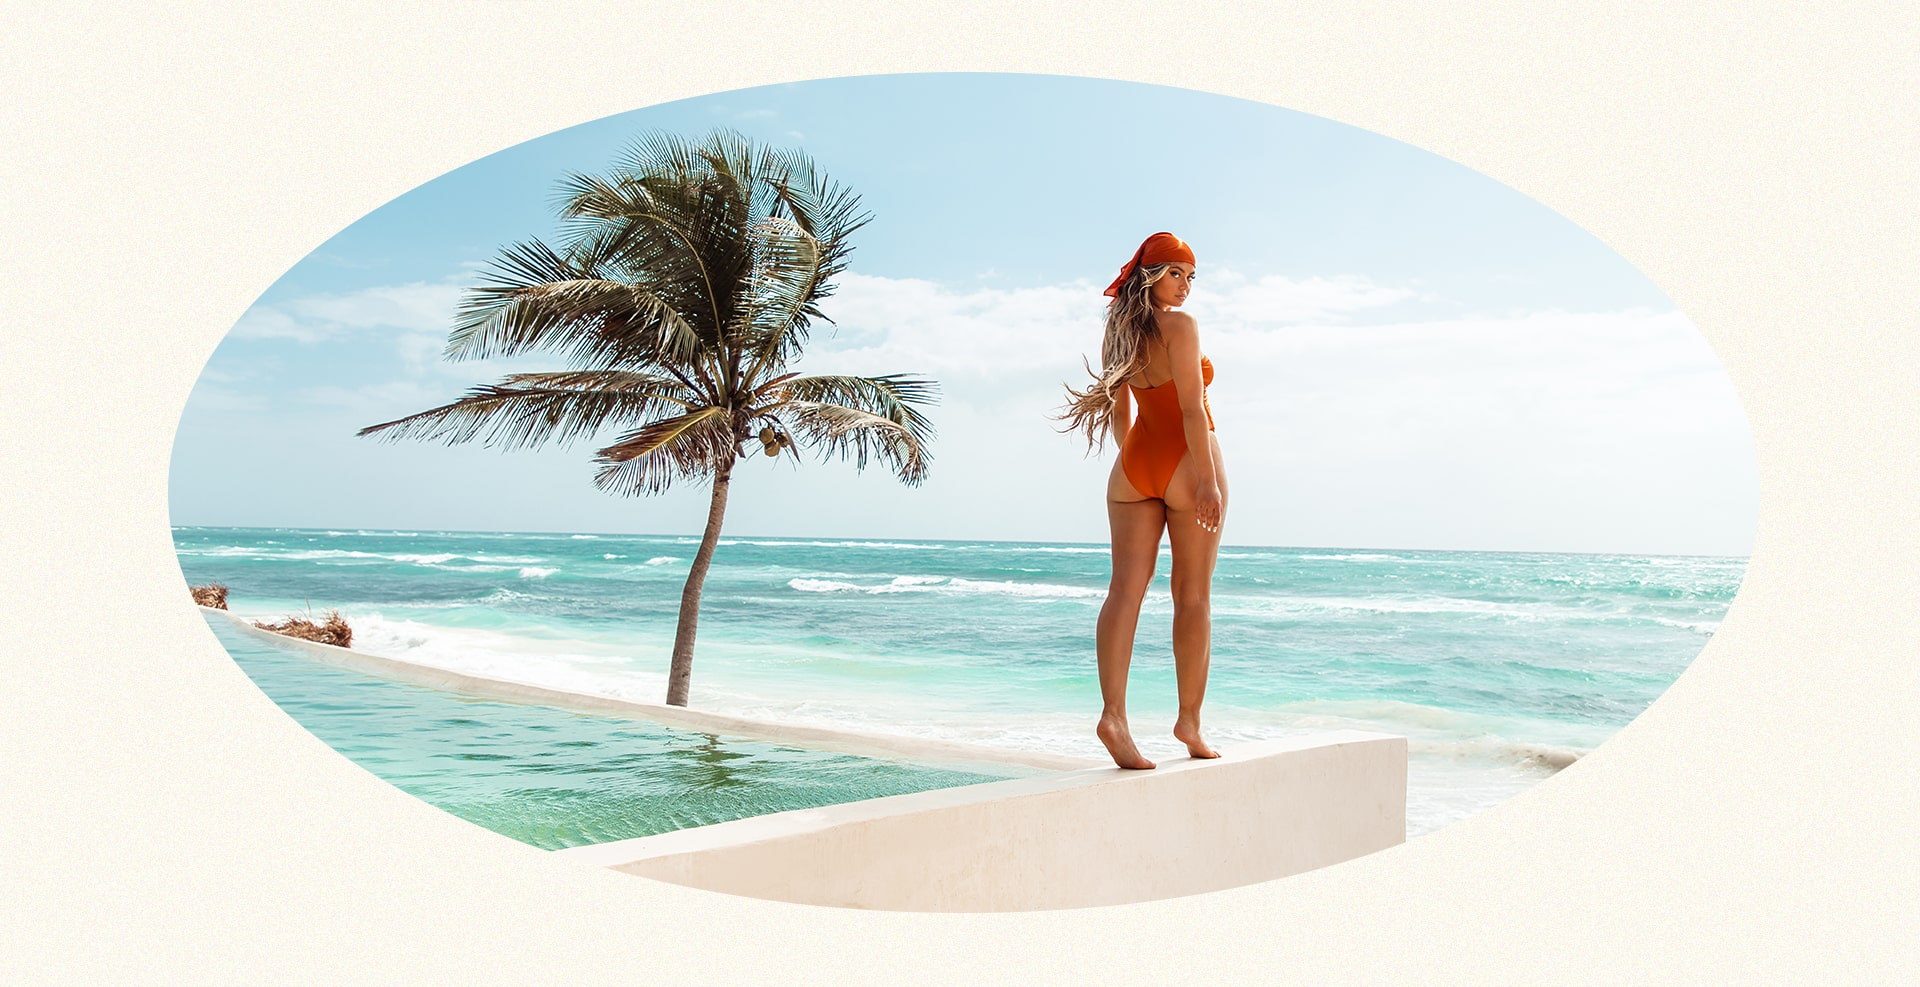 Destination Swim Tulum Lookbook Image Desktop 6